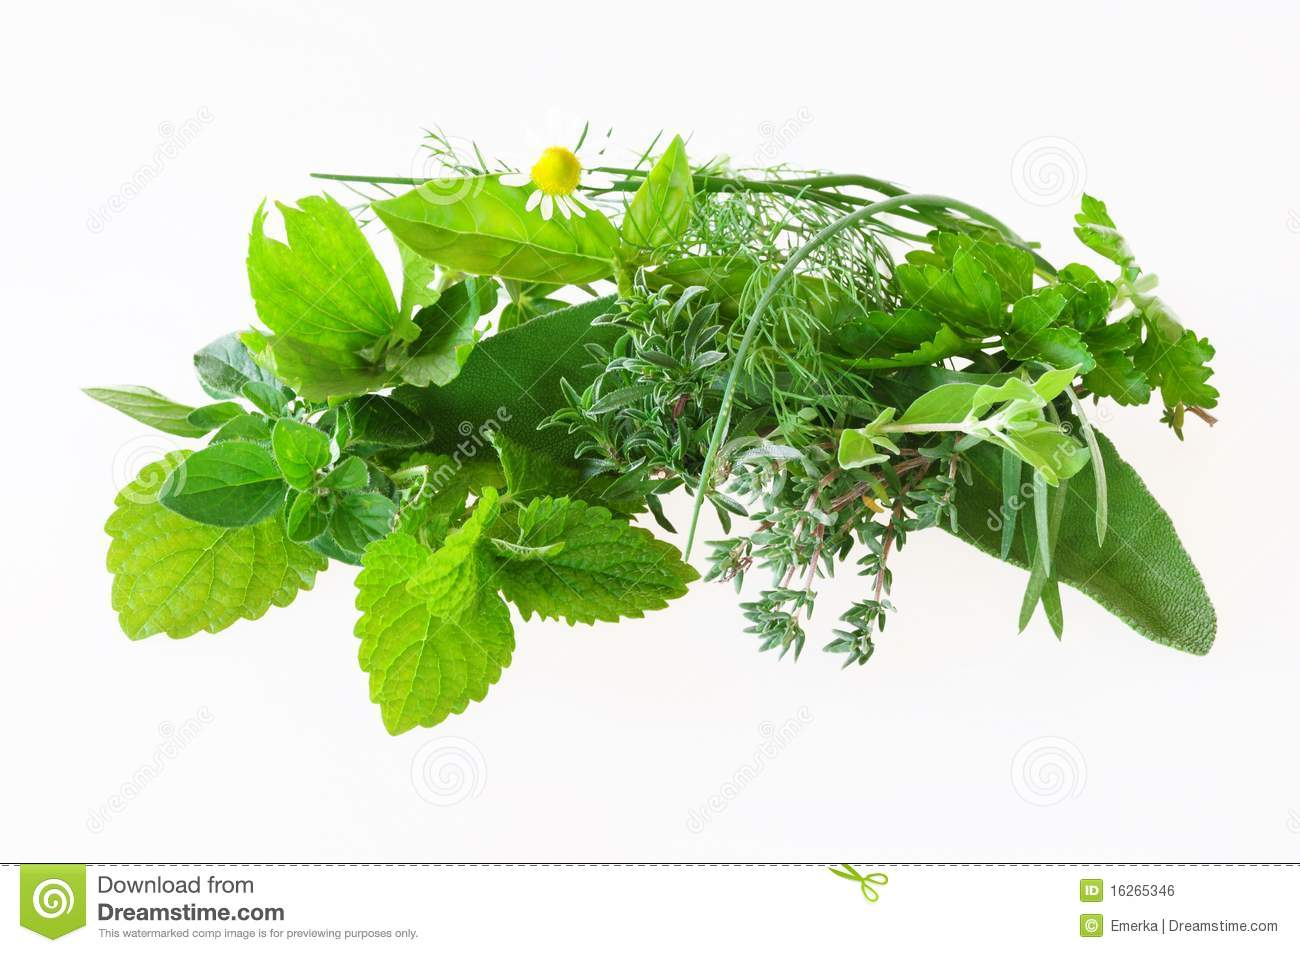 Different herbs royalty free stock image image 16265346 16265346 different herbs royalty free stock image